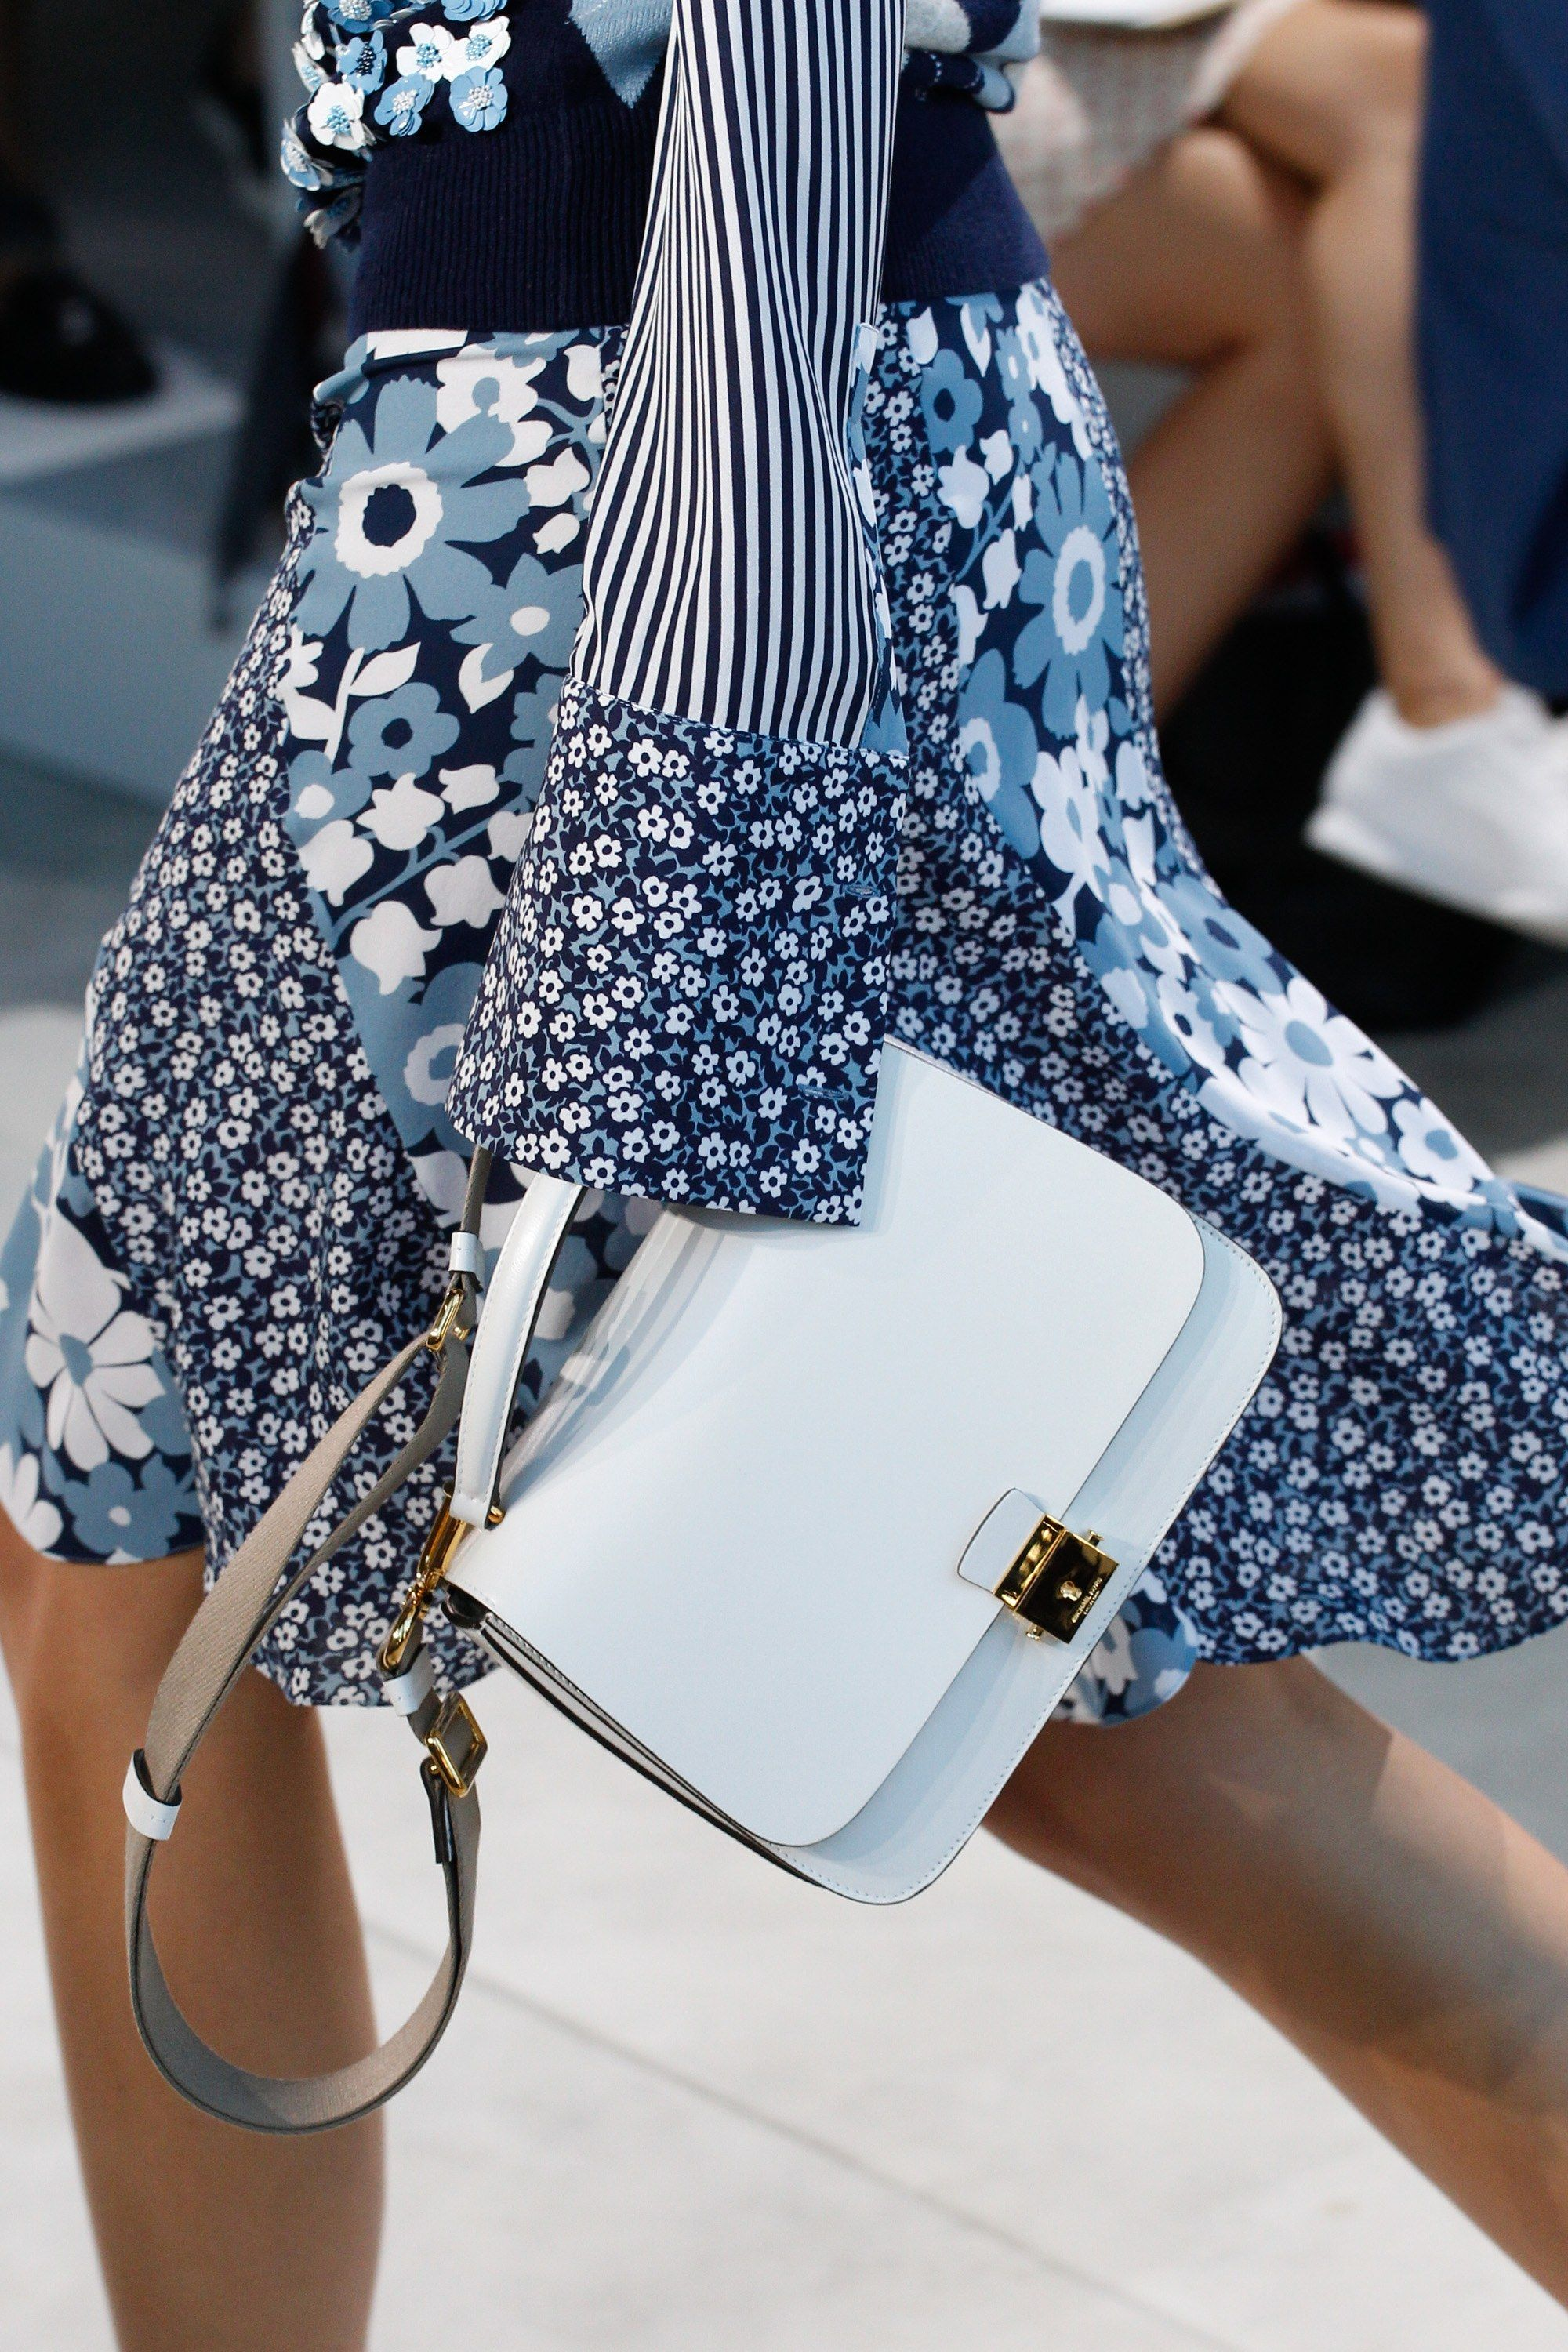 Michael Kors Collection Spring 2017 Ready To Wear Fashion Show Details Handbags